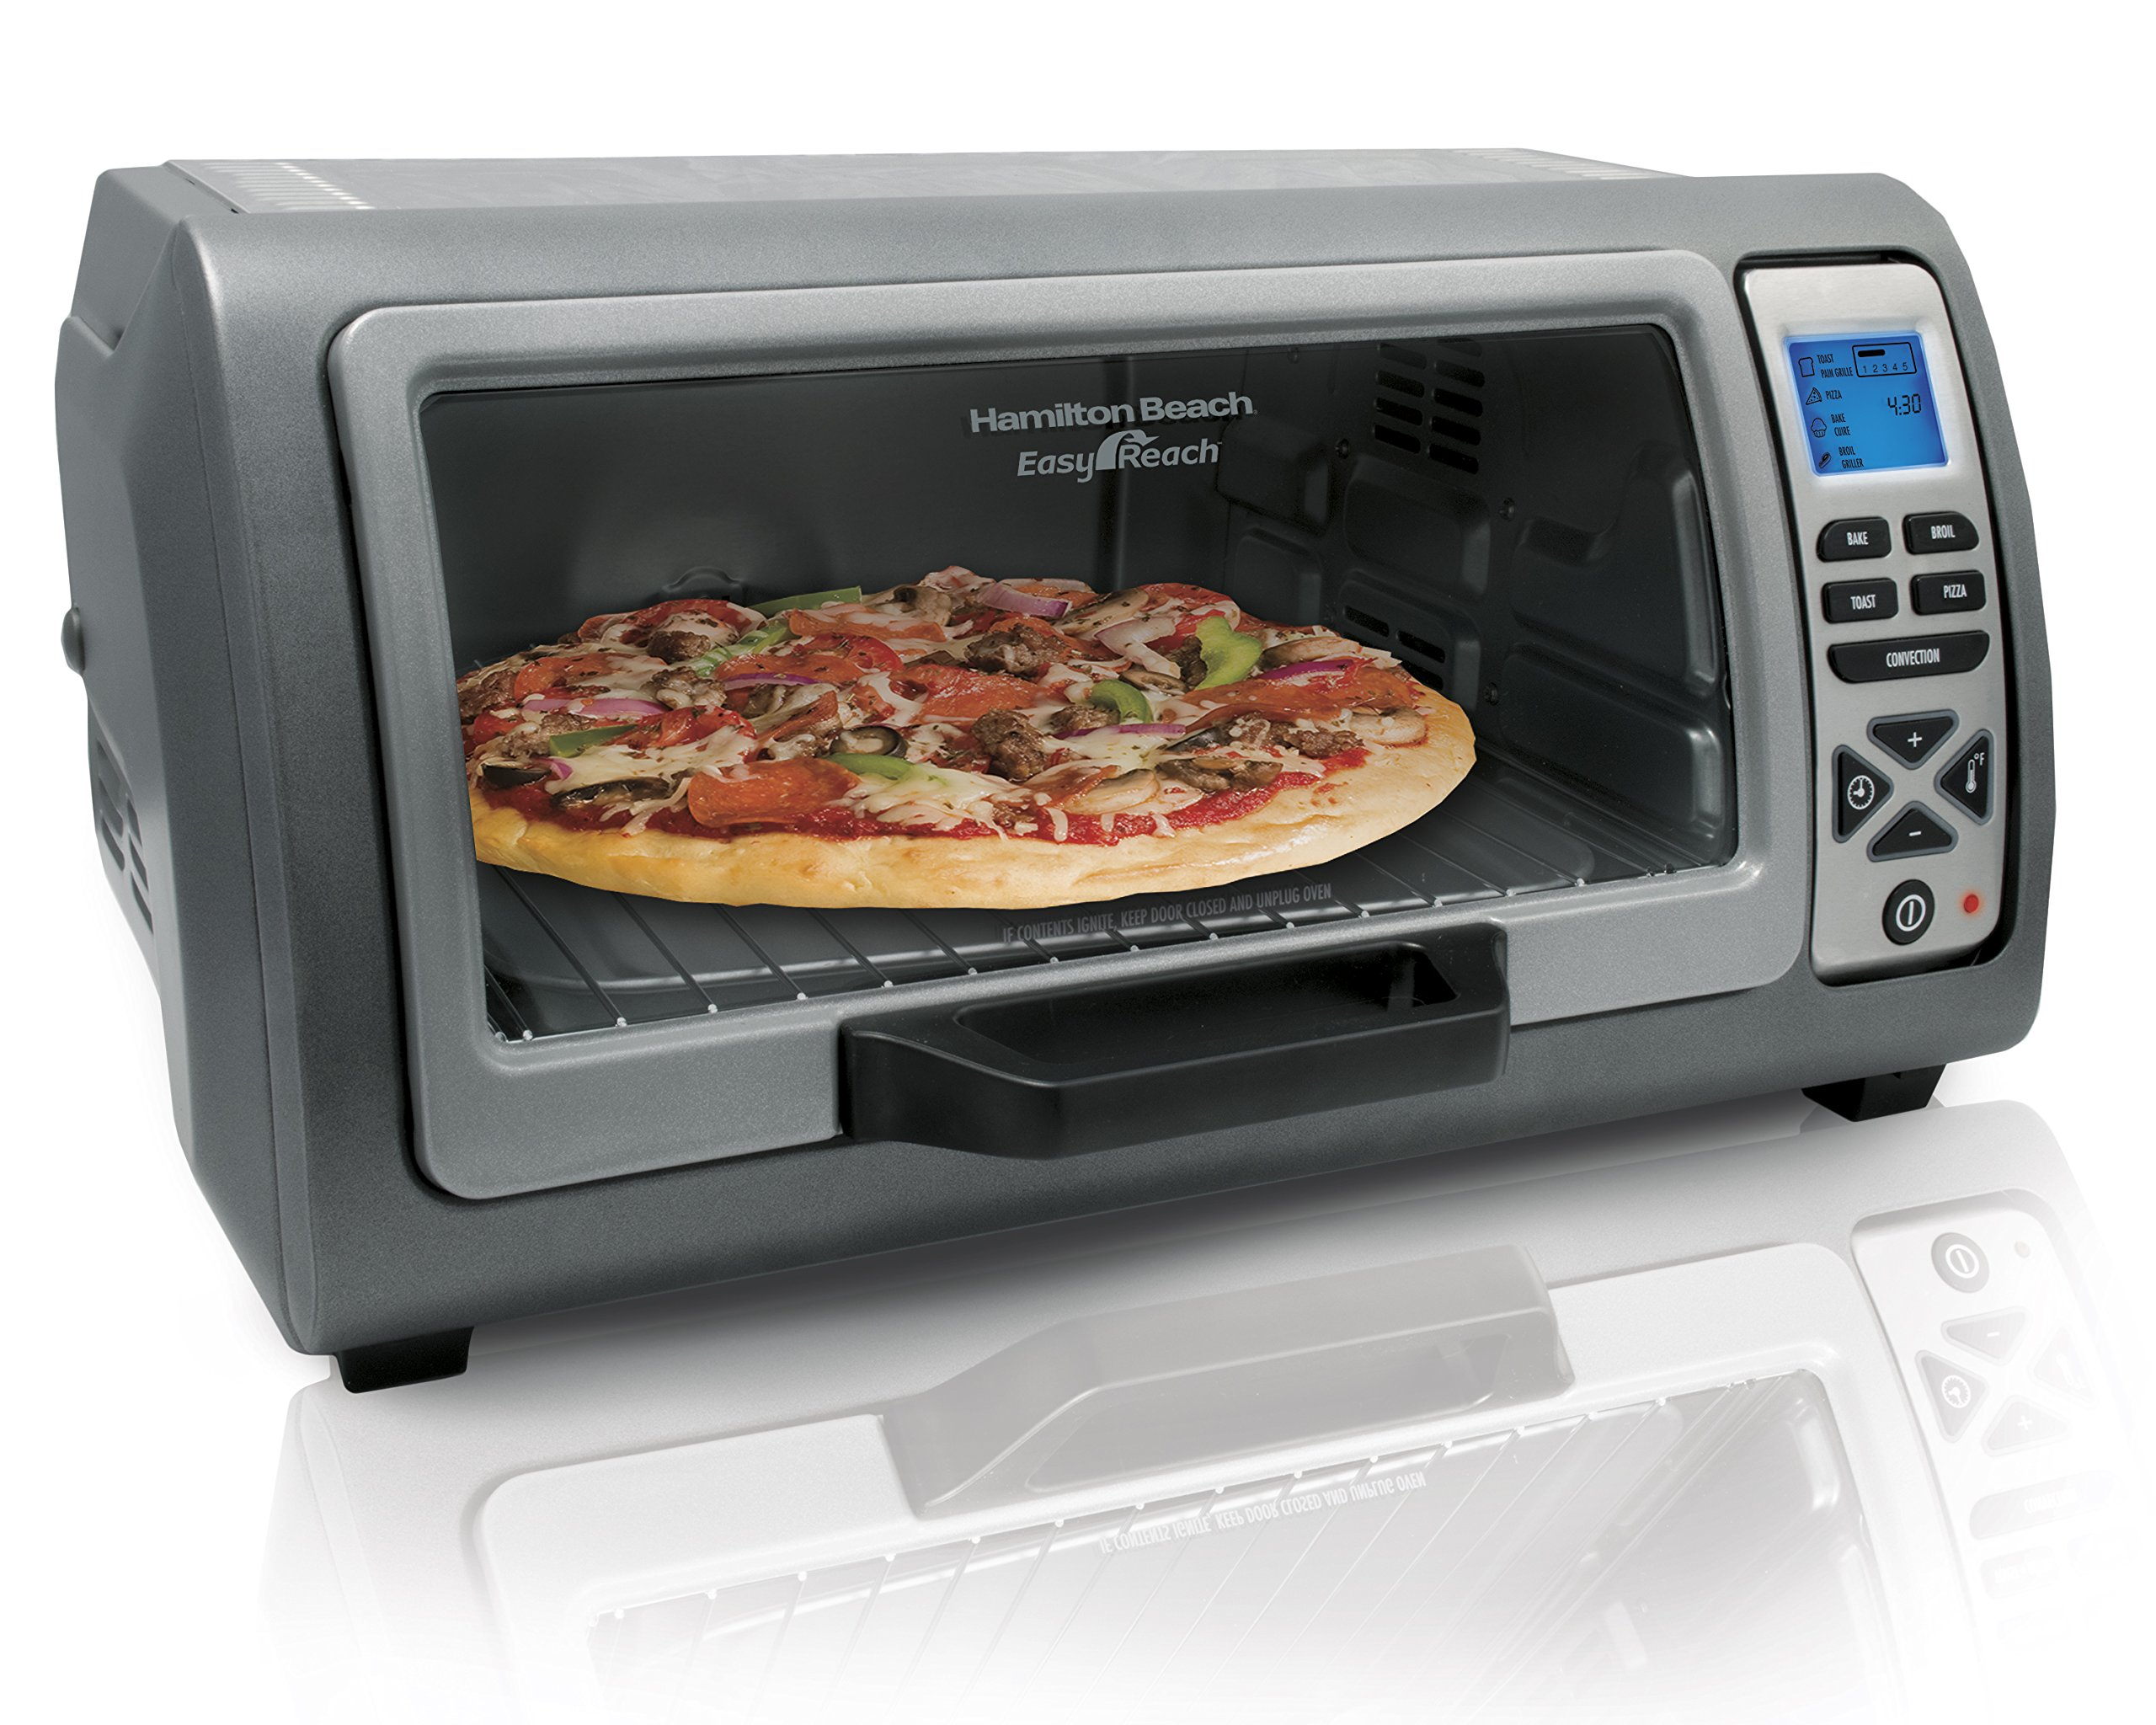 Hamilton Beach 31128 Easy Reach Toaster Oven, with Roll-Top Door, Stainless Steel by Hamilton Beach